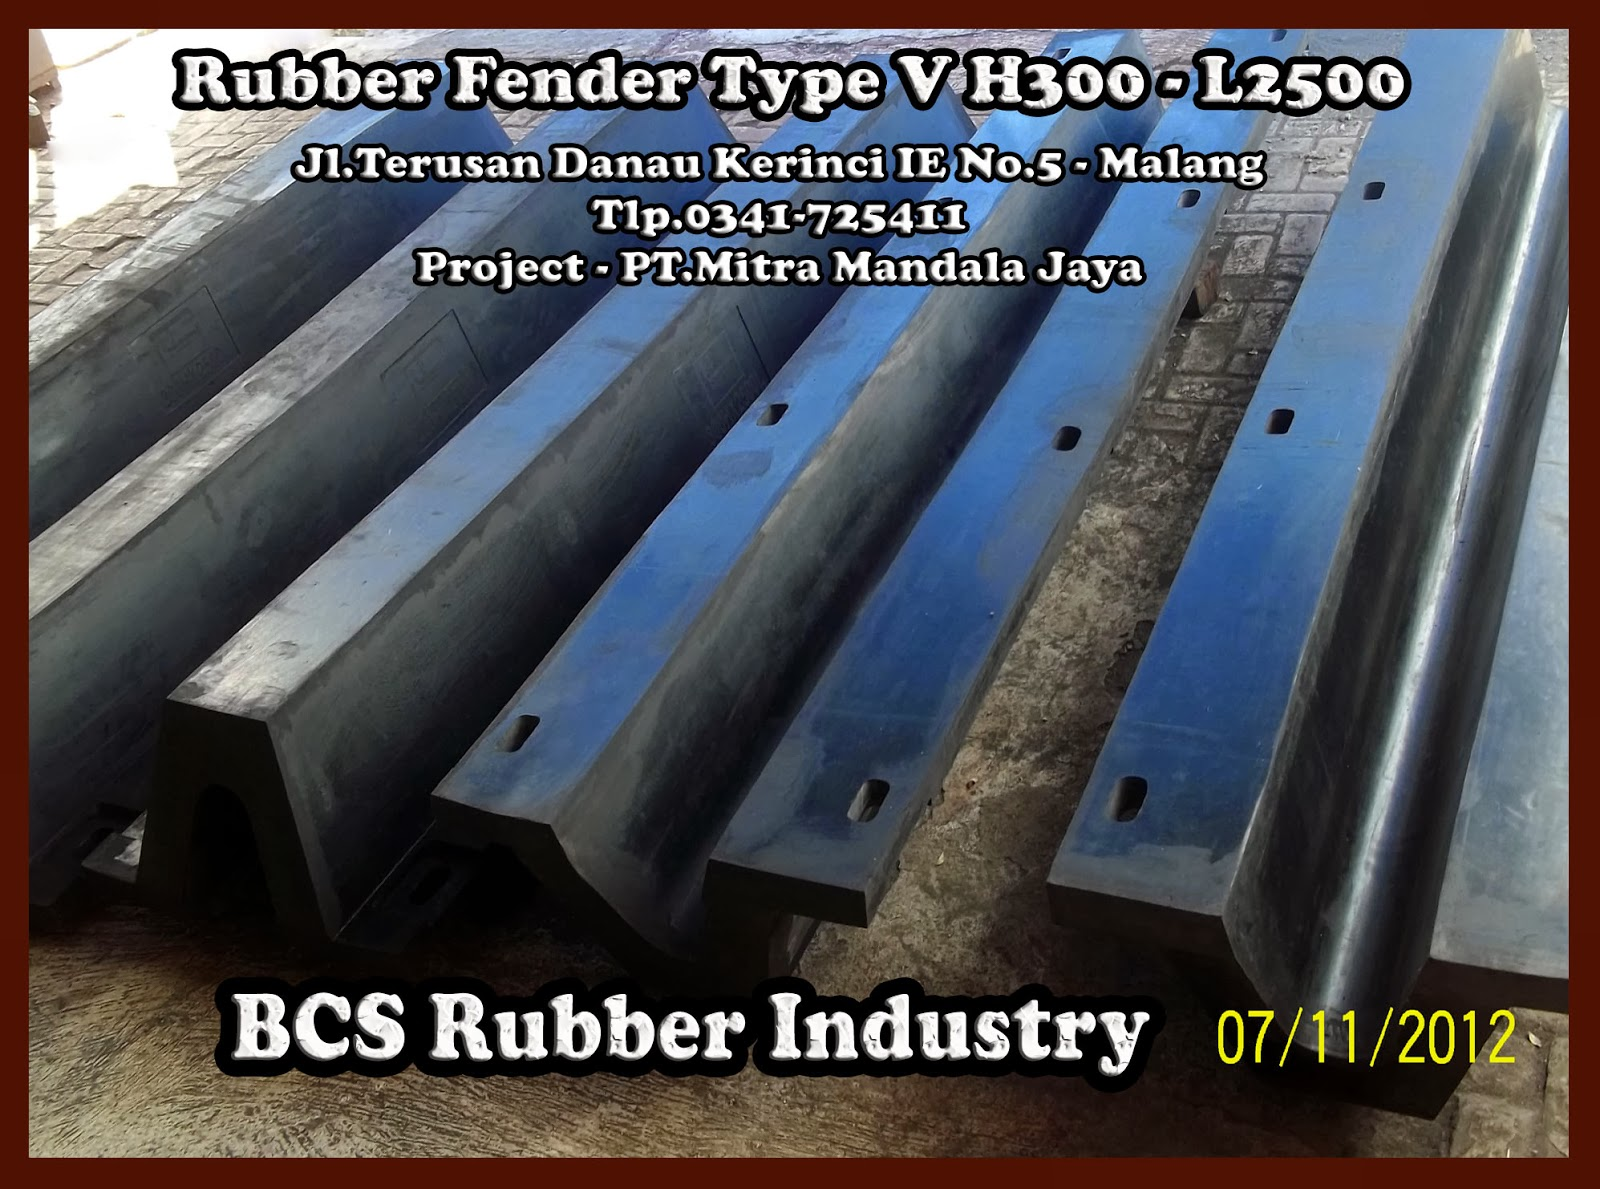 RUBBER FENDER  V -SPECIAL PRUDUCTS - BCS RUBBER INDUSTRY